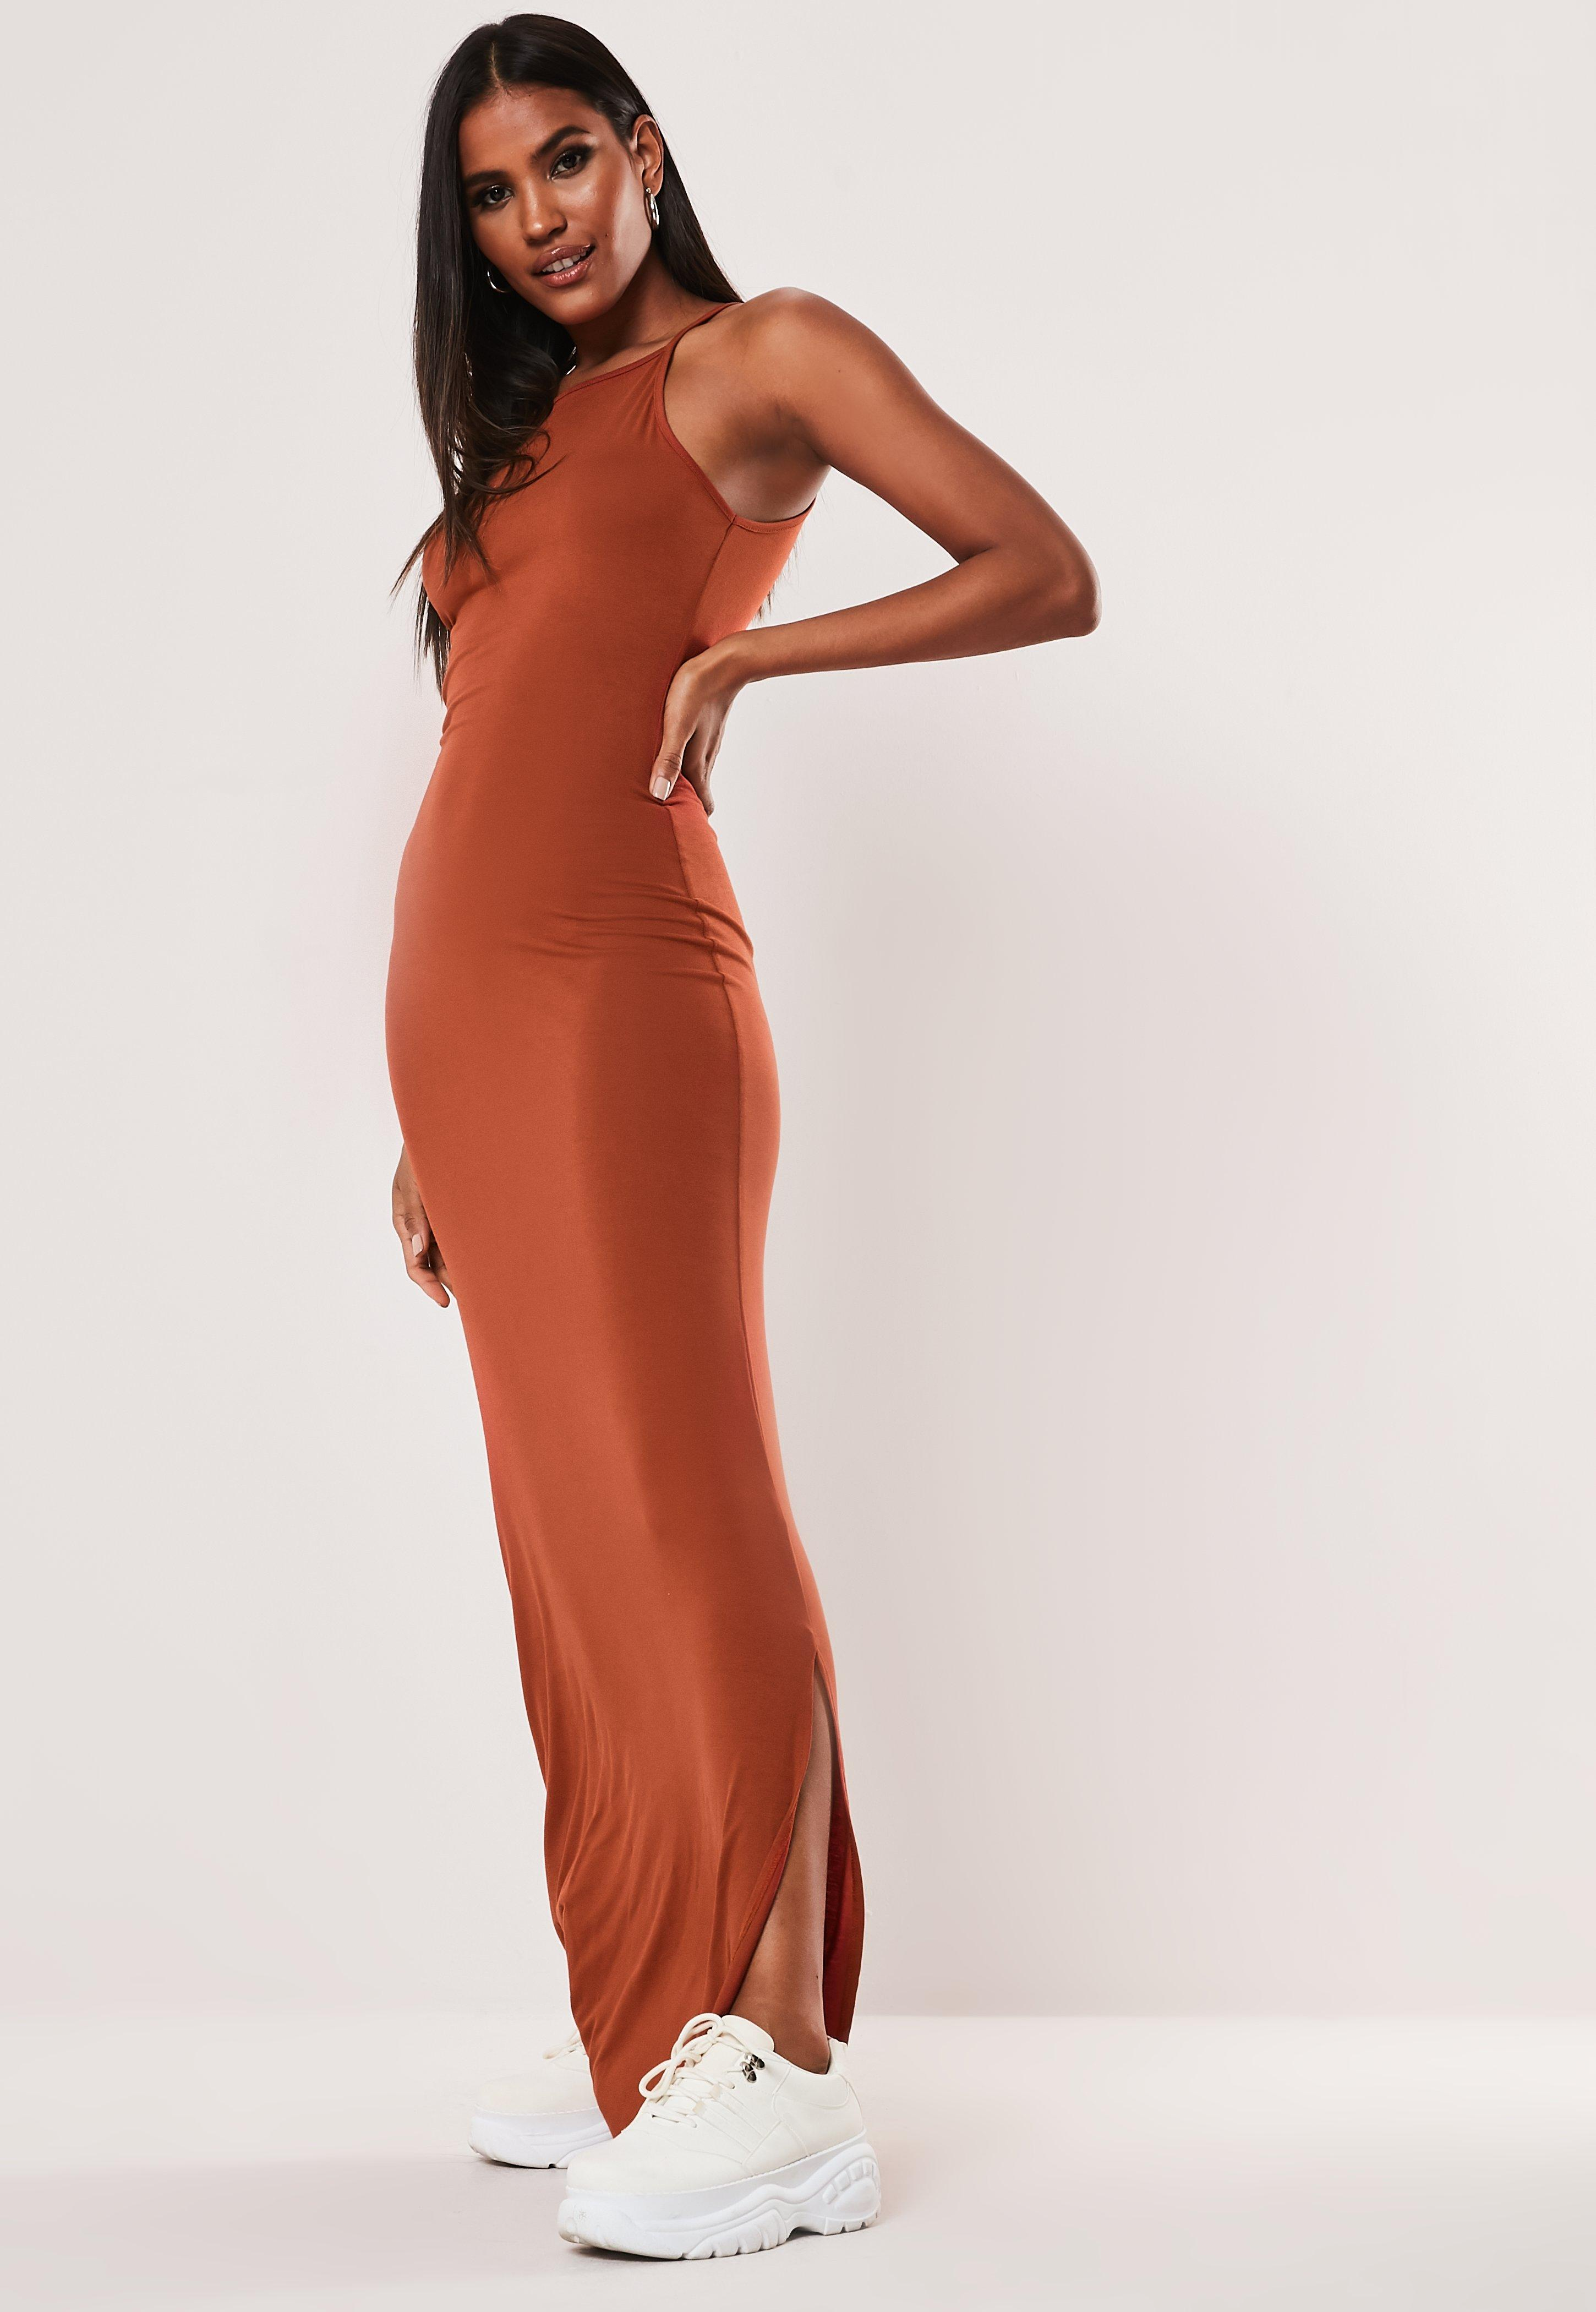 Orange Robe Basique Tall Longue Longue Robe JTlF1c3K